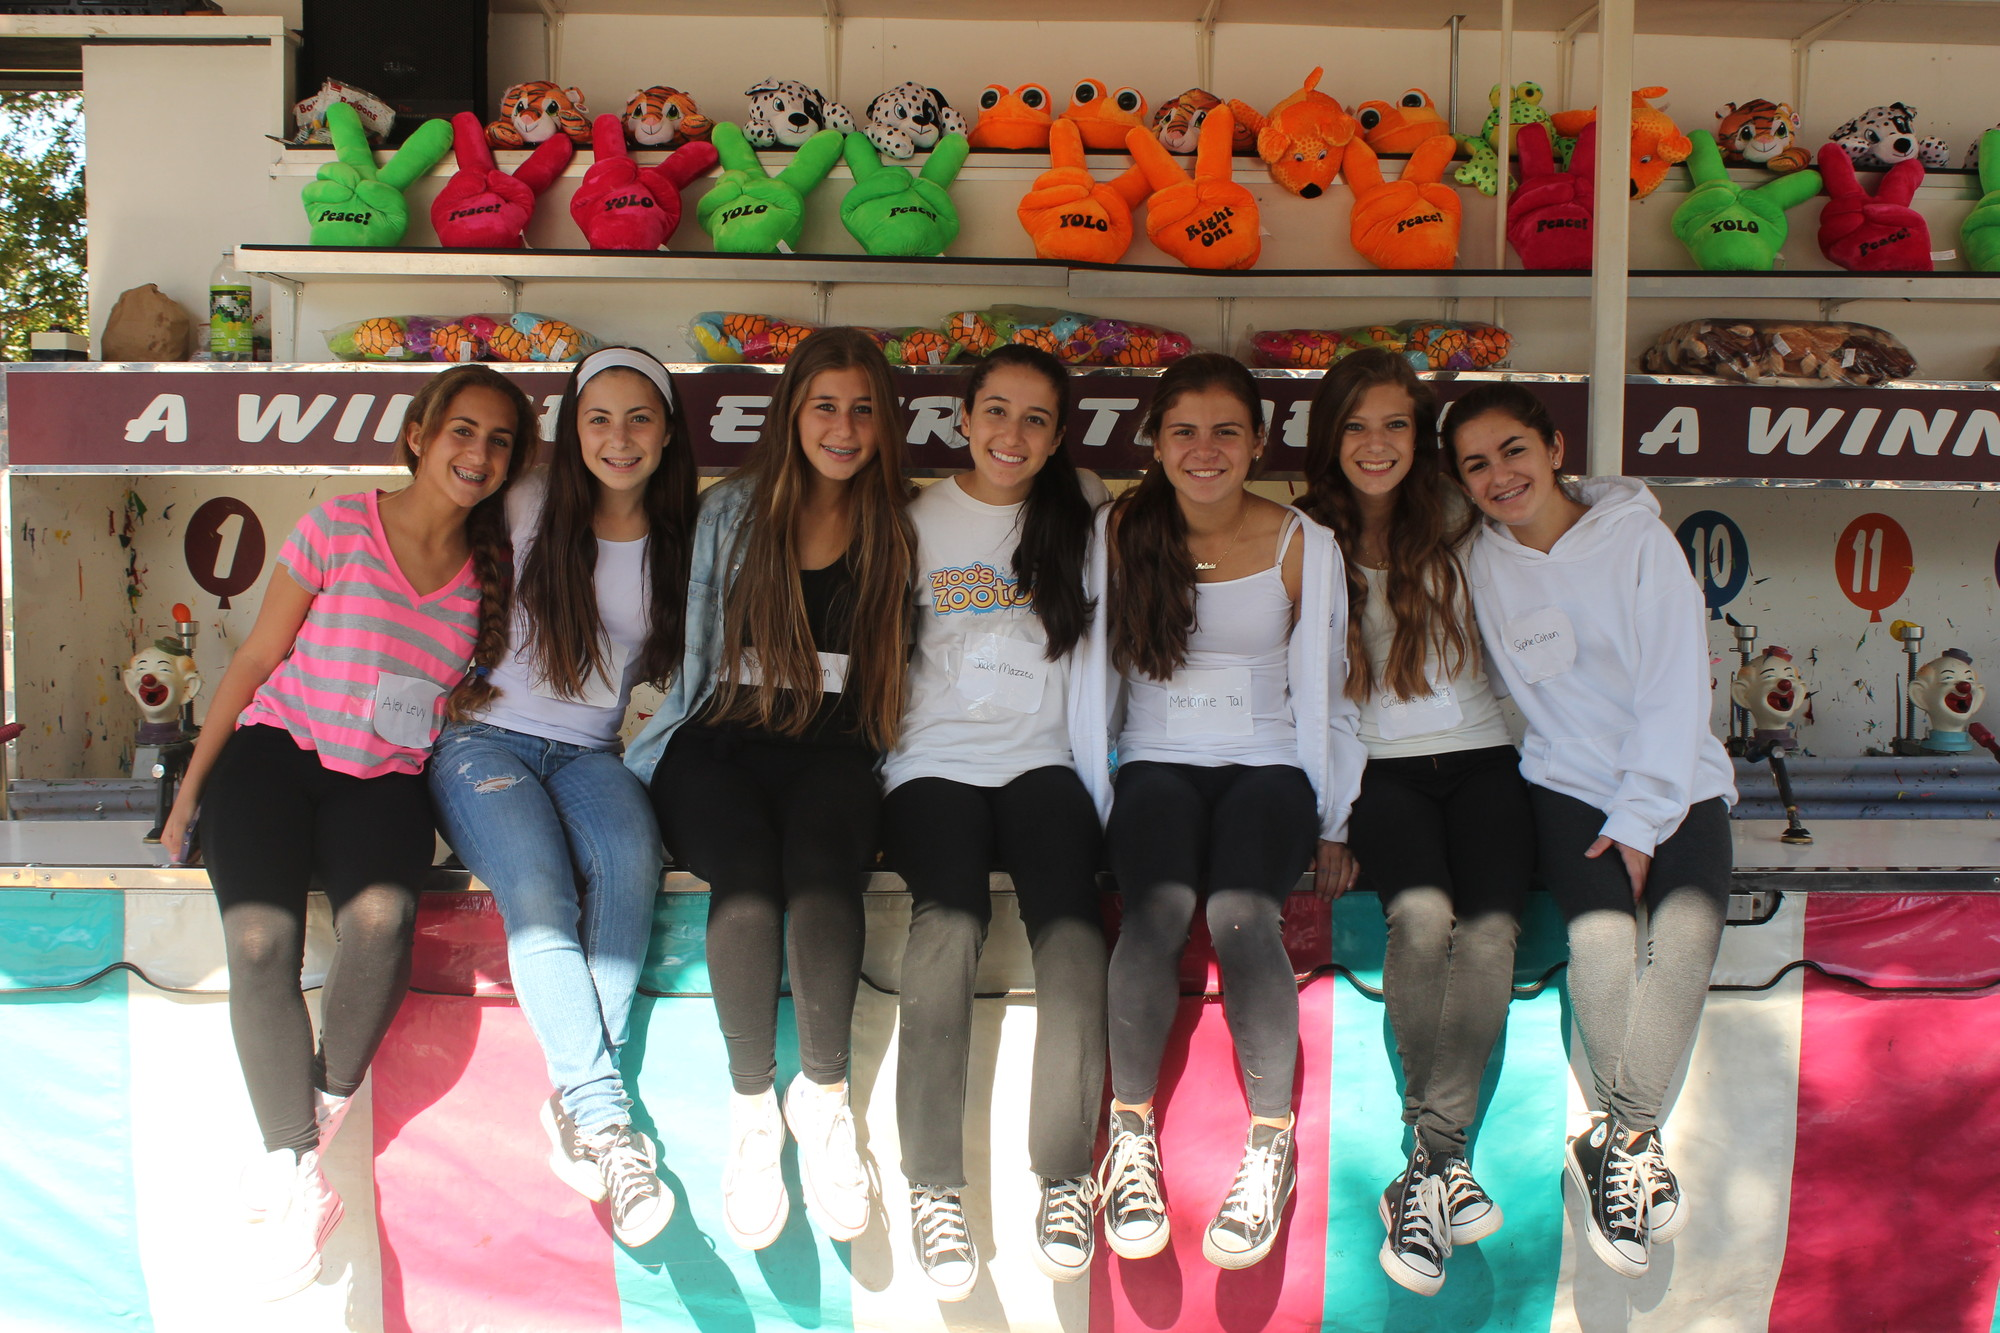 Volunteers from Hewlett High School's Youth Leadership Forum helped out at the festival. From left were ninth-graders Alex Levy, Jordanna Yochai, Rebecca Kreisman, Jackie Mazzeo, Melanie Tal, Colette Davies and Sophie Cohen.